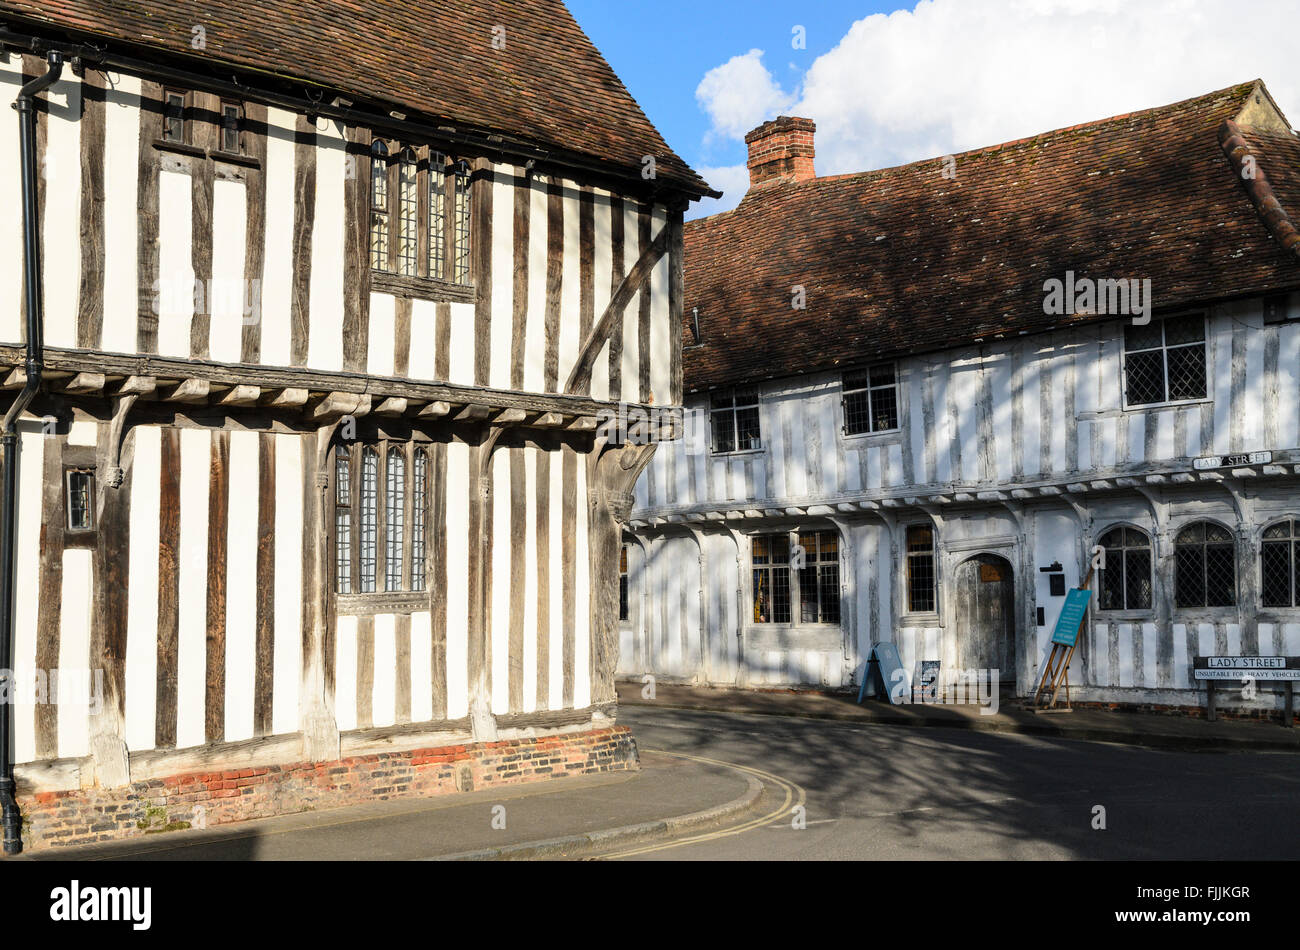 Traditional half-timbered medieval builidings in Lavenham, Suffolk, England, UK. - Stock Image